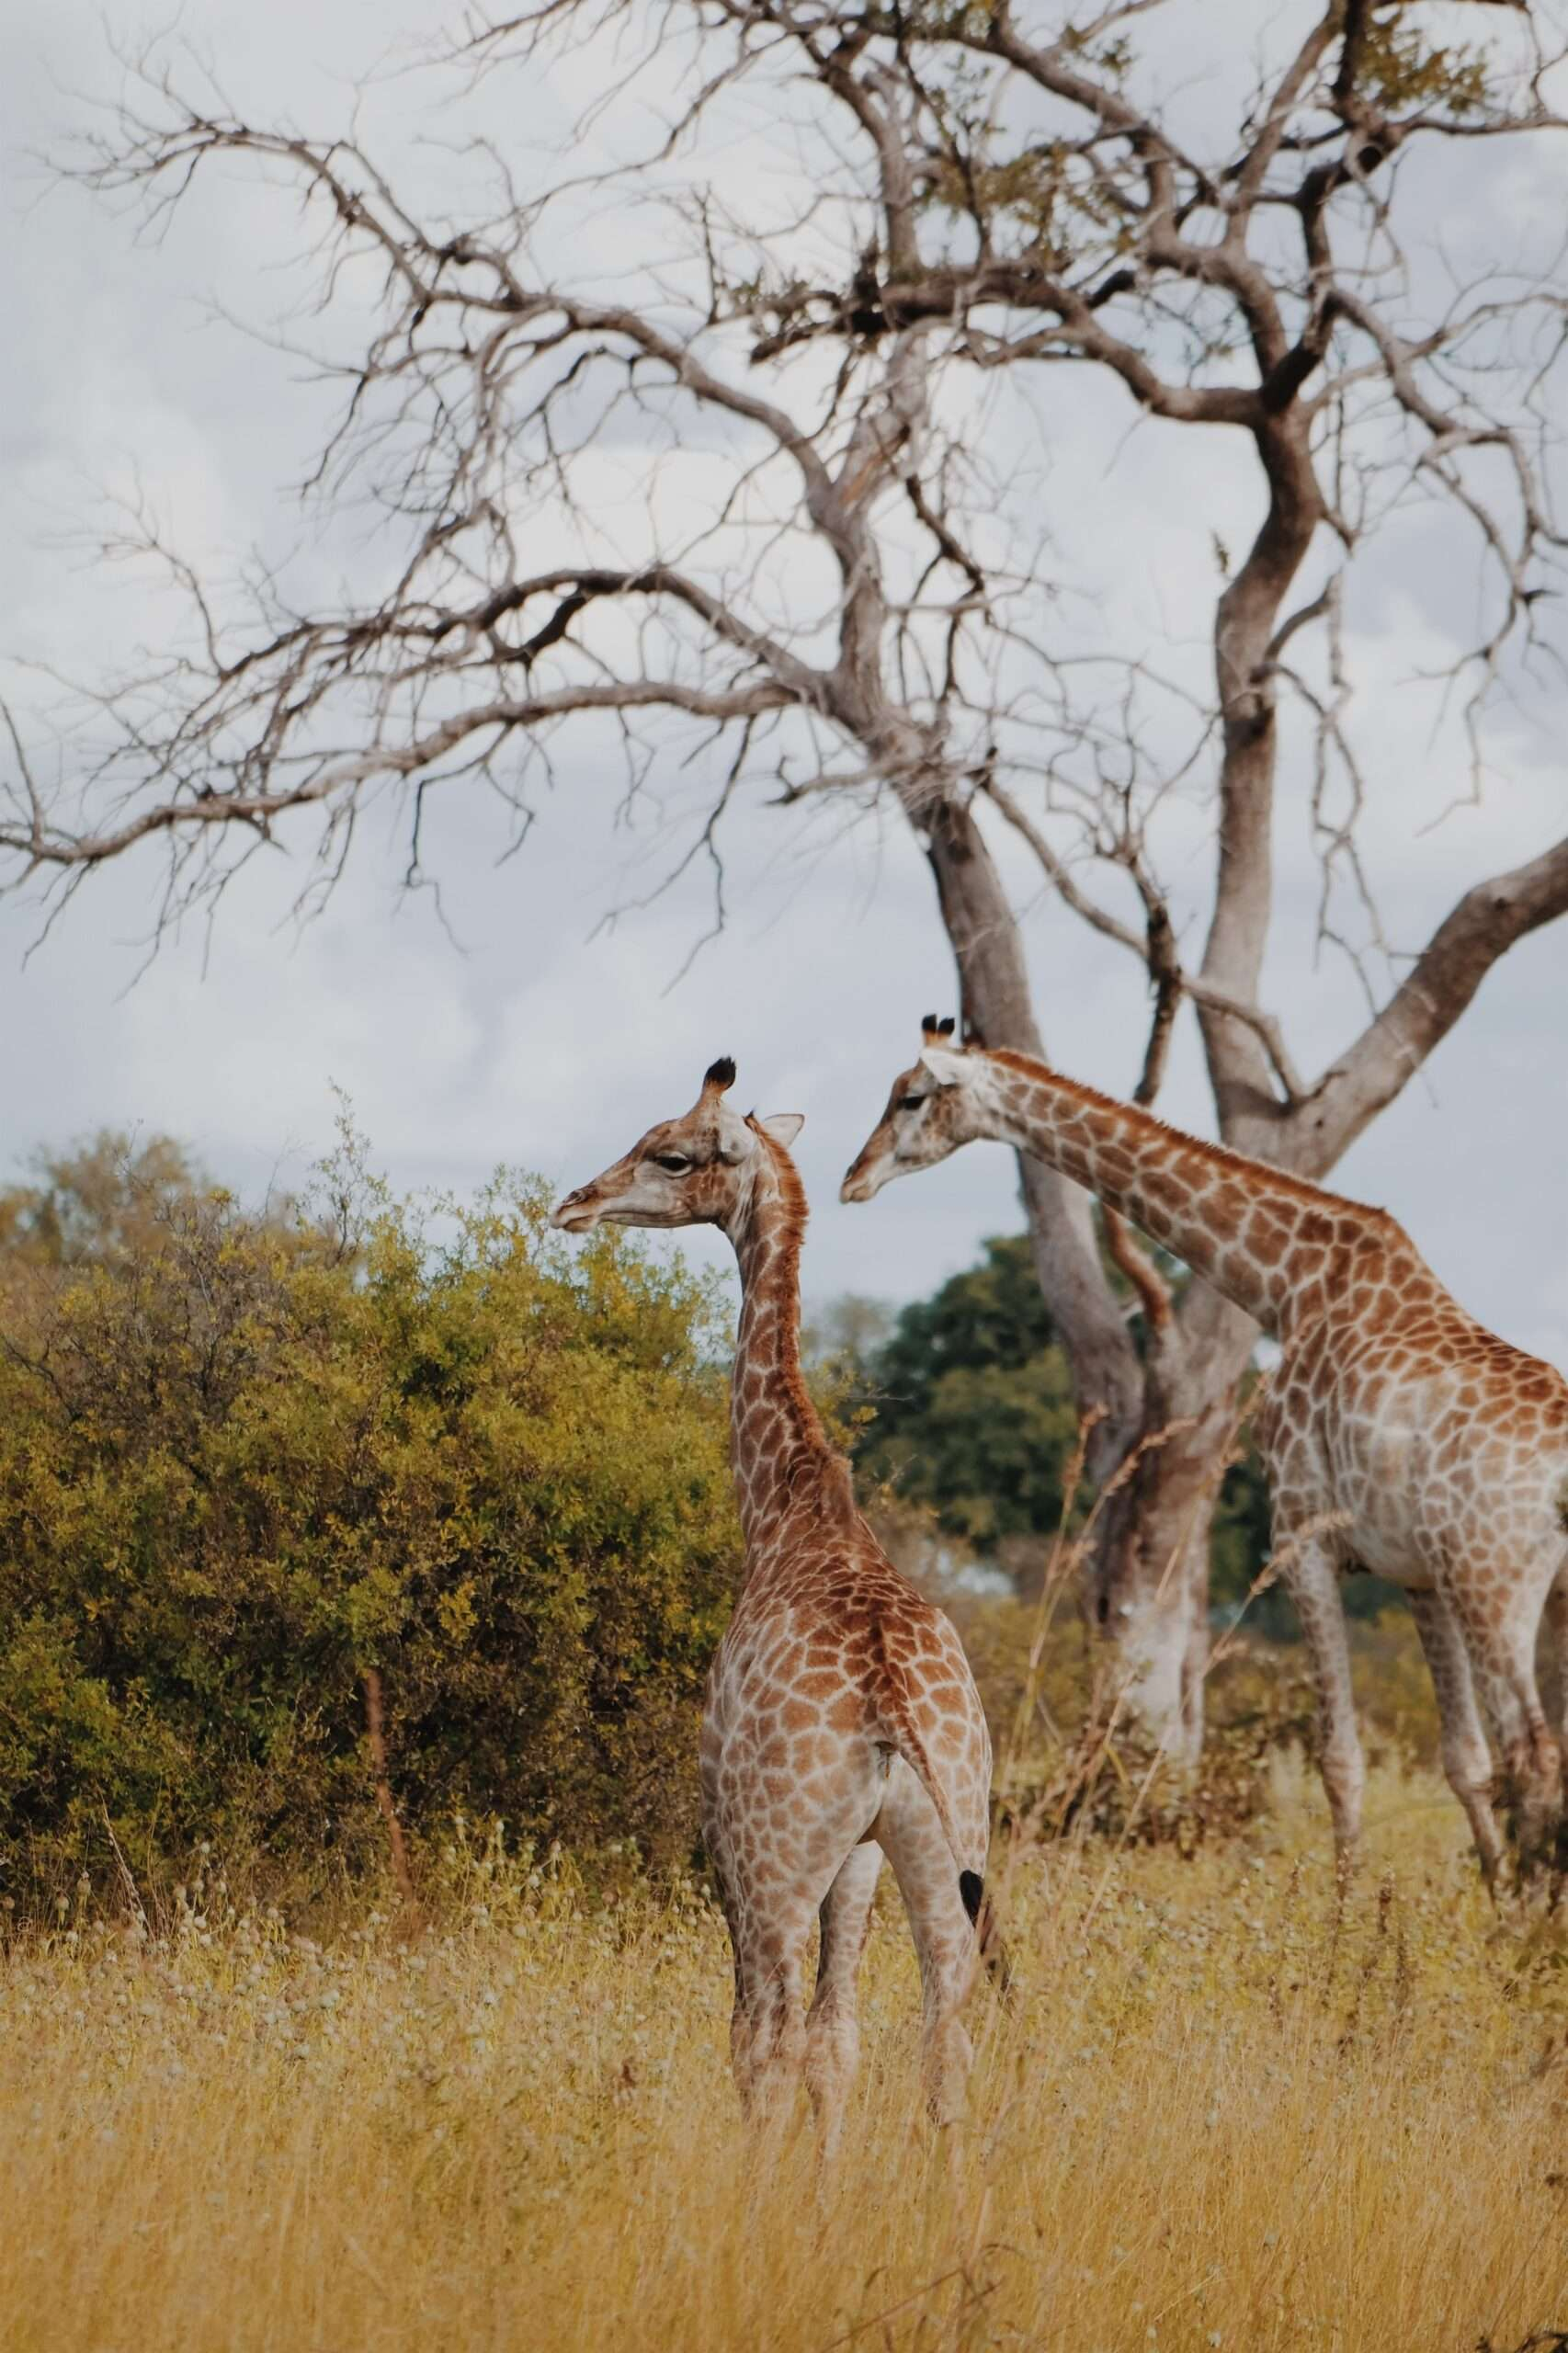 two giraffes, seen during safari in the okavango delta